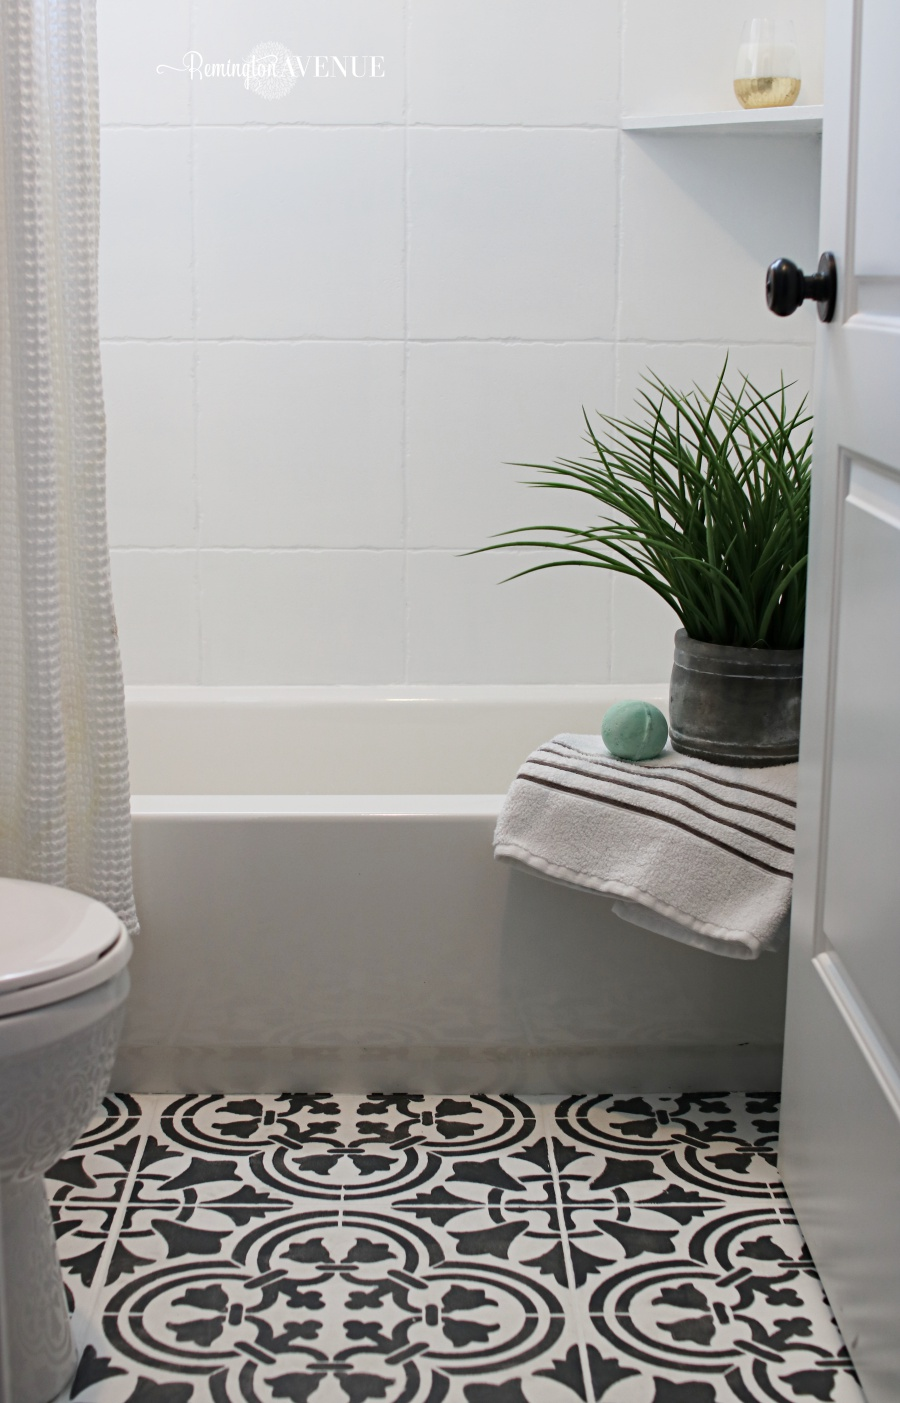 How to Paint Shower Tile